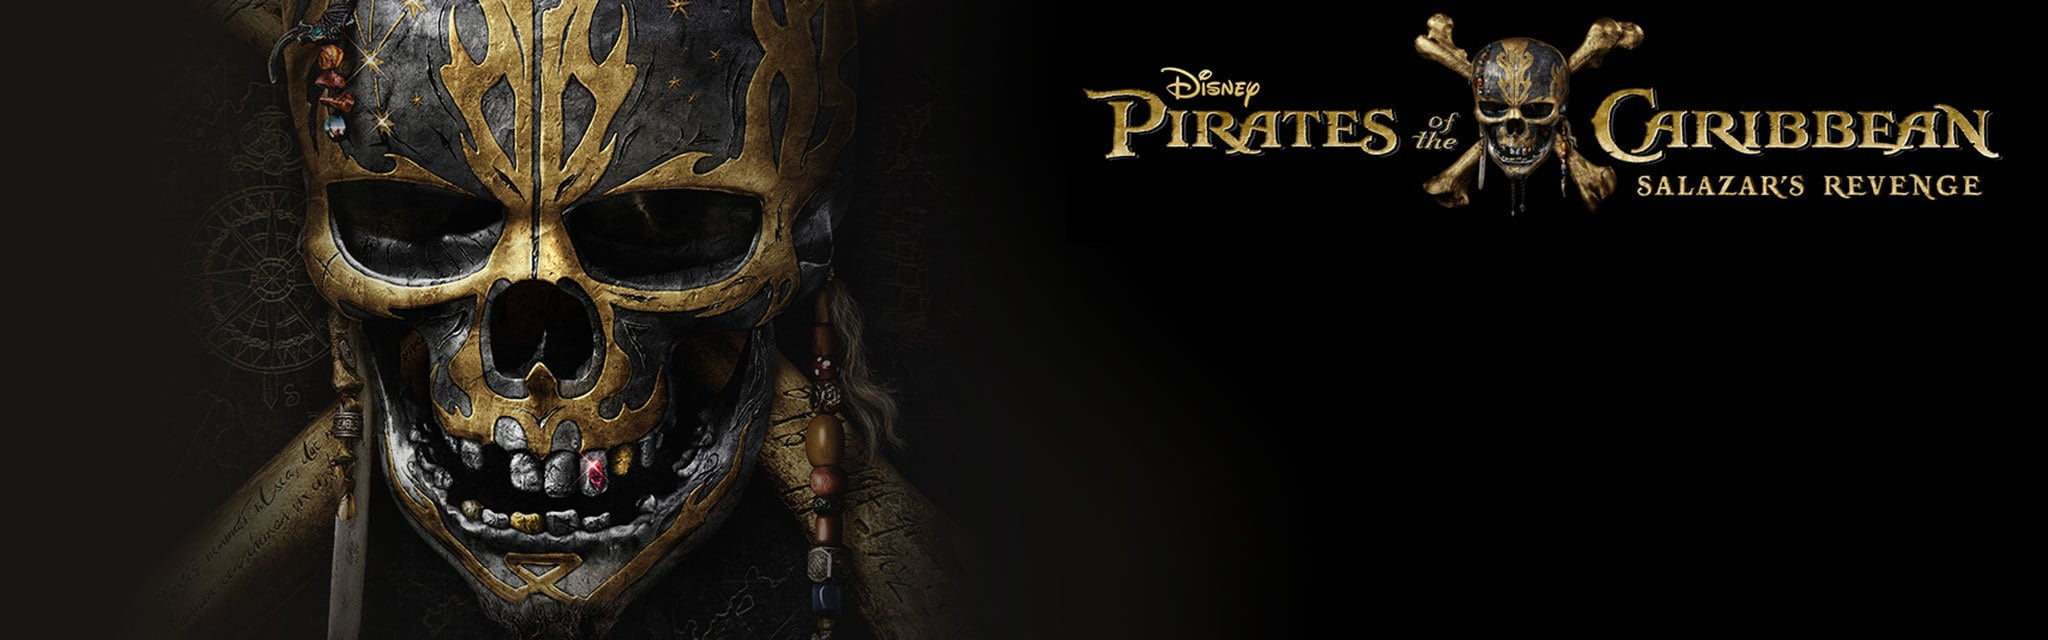 Pirates of the Caribbean: Salazar's Revenge - Extended Look (Hero Universal)